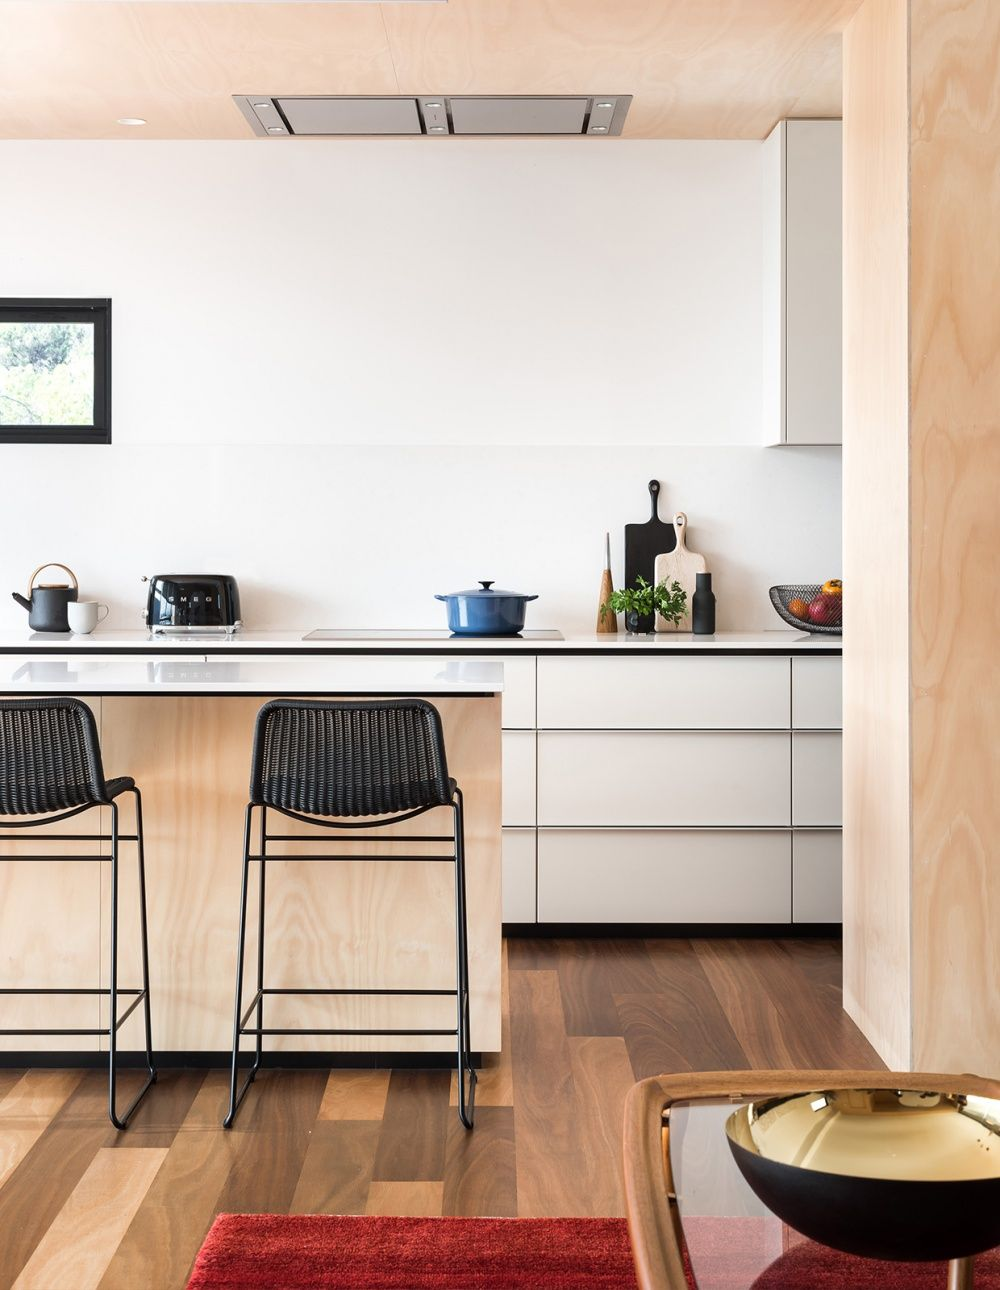 The galley style kitchen has framed views up into the coastal heath of the leeuwin